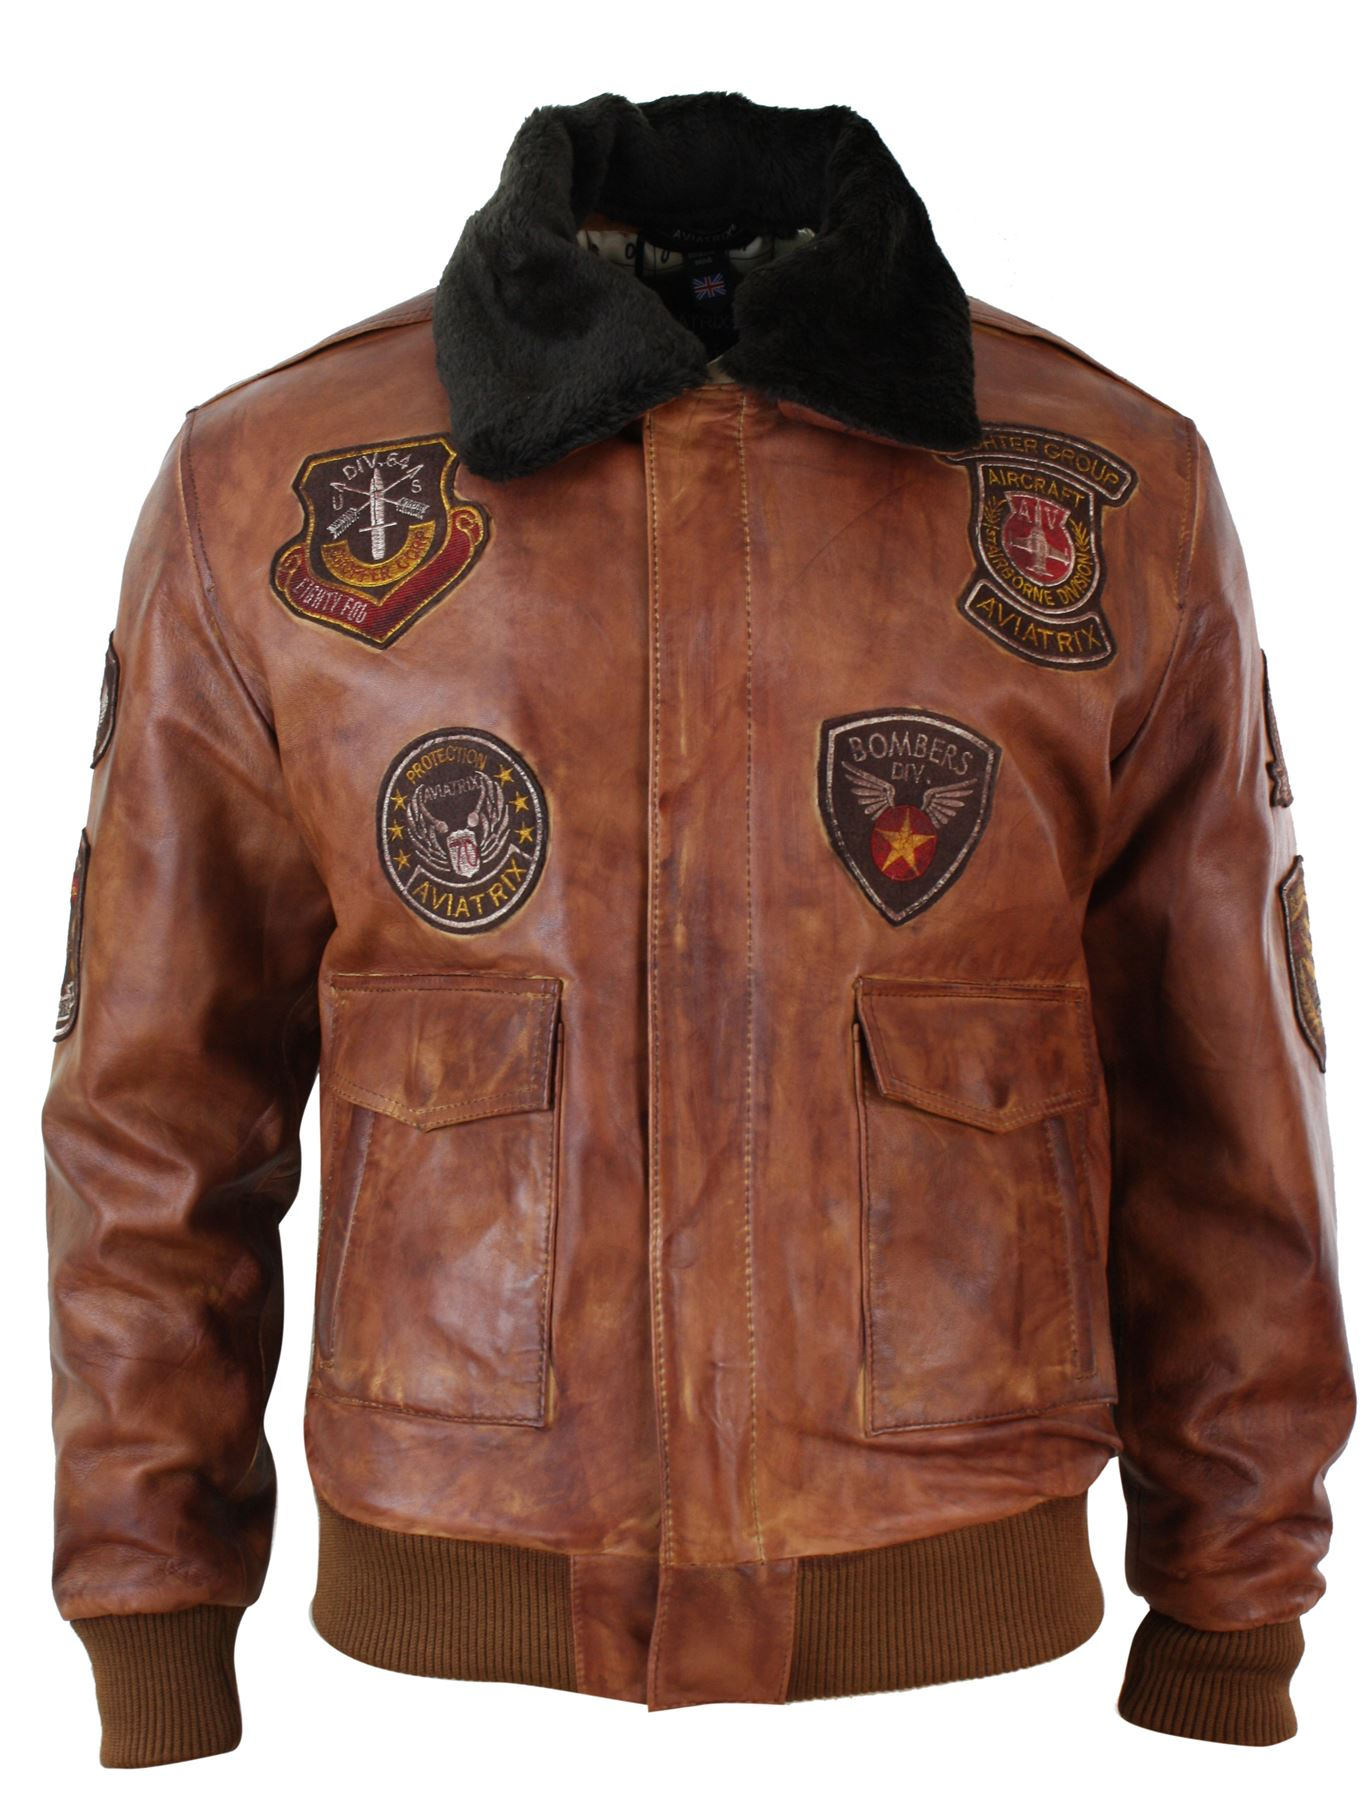 blouson homme aviateur bomber pilote style vintage cuir vieilli marron clair ebay. Black Bedroom Furniture Sets. Home Design Ideas